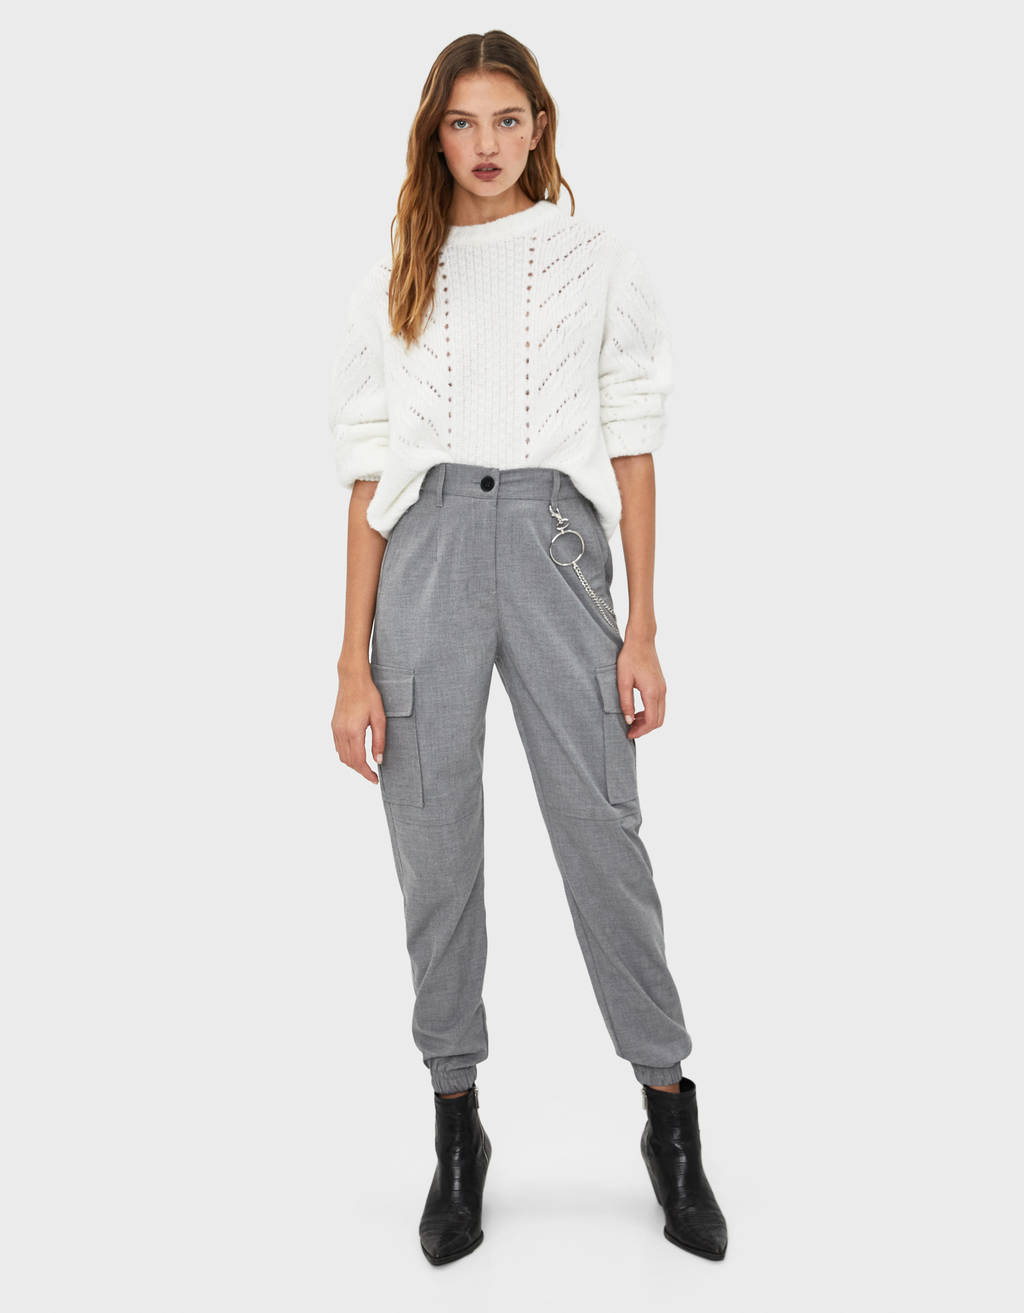 Bershka Bershka Collection Femme Belgium Collection Pantalons Pantalons Femme Collection Pantalons Belgium X8nkPw0O